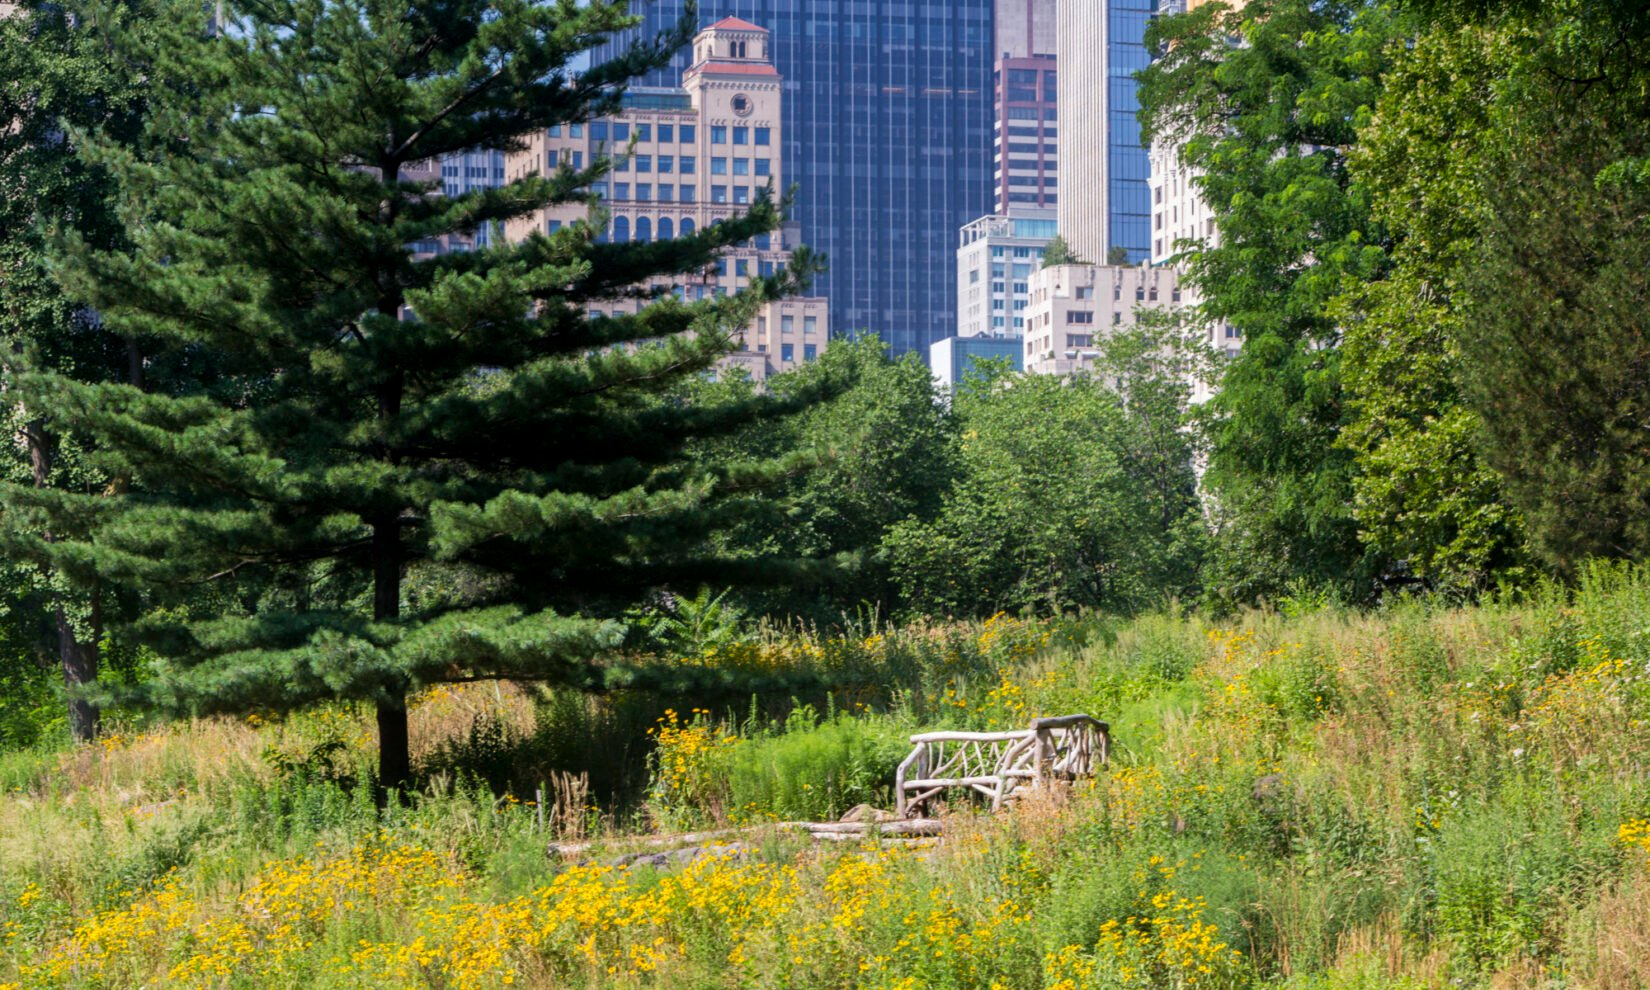 A rustic bench surrounded by Dene Slope, with the New York City skyline in the background